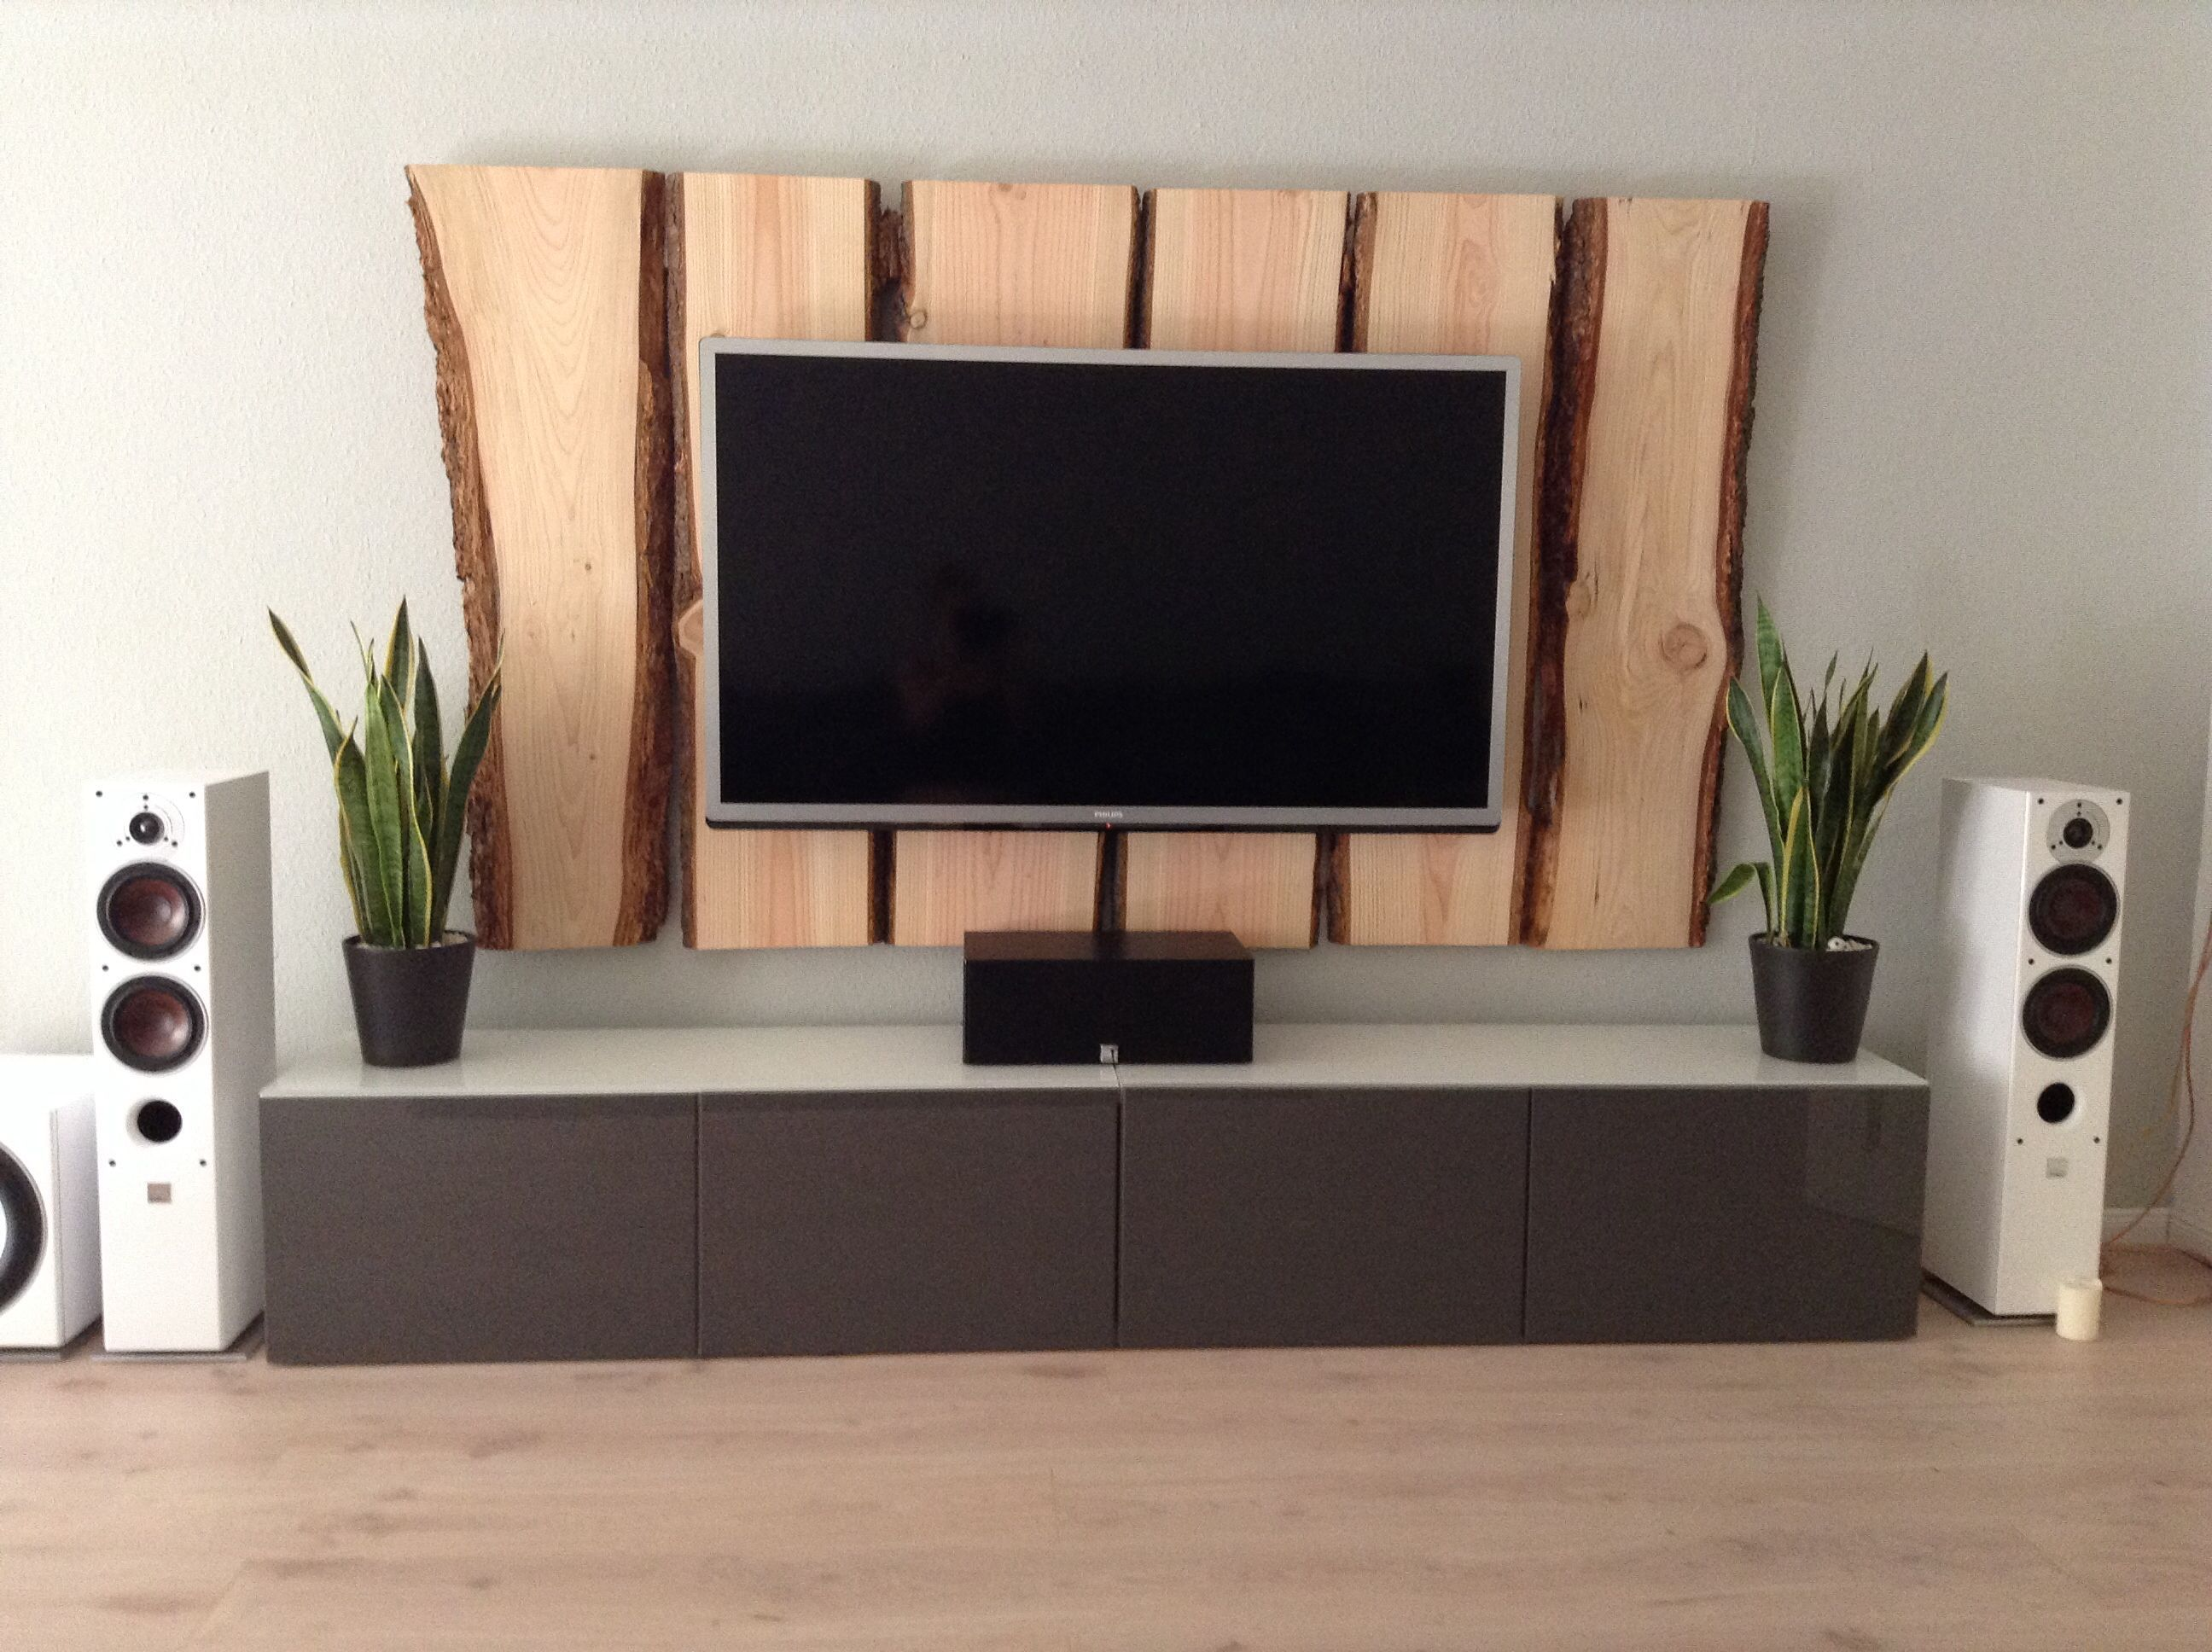 Tv In Wand Holz #wand #wall #wood #tvholz Tv Wand - Tv Wall Wood | Living Room Tv Wall, Wood Wall, Living Room Tv